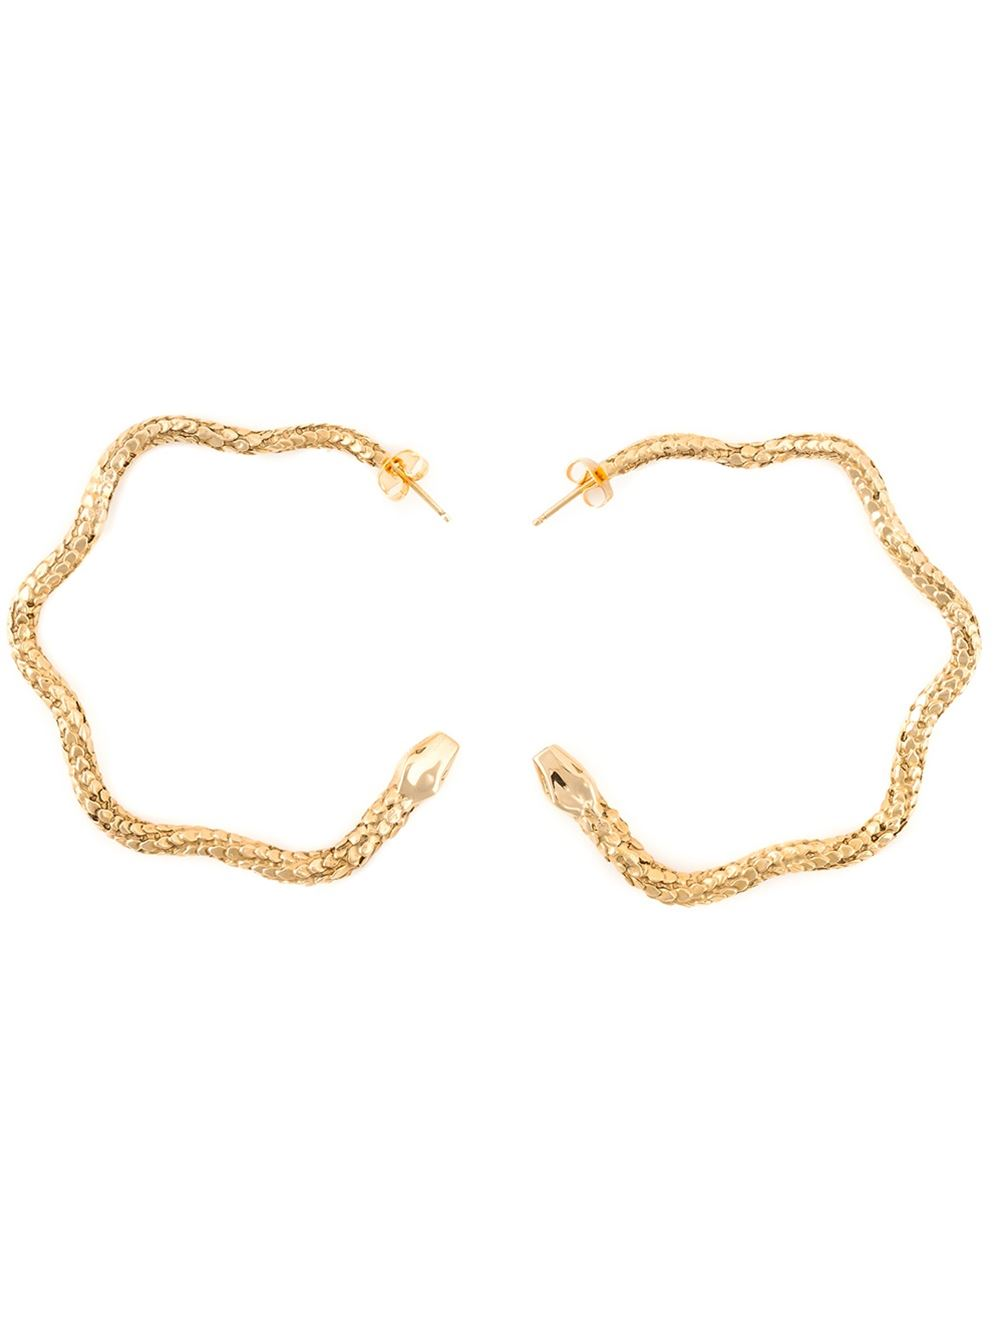 Aurelie Bidermann Tao hoop earrings | Shop Heaven Has Heels